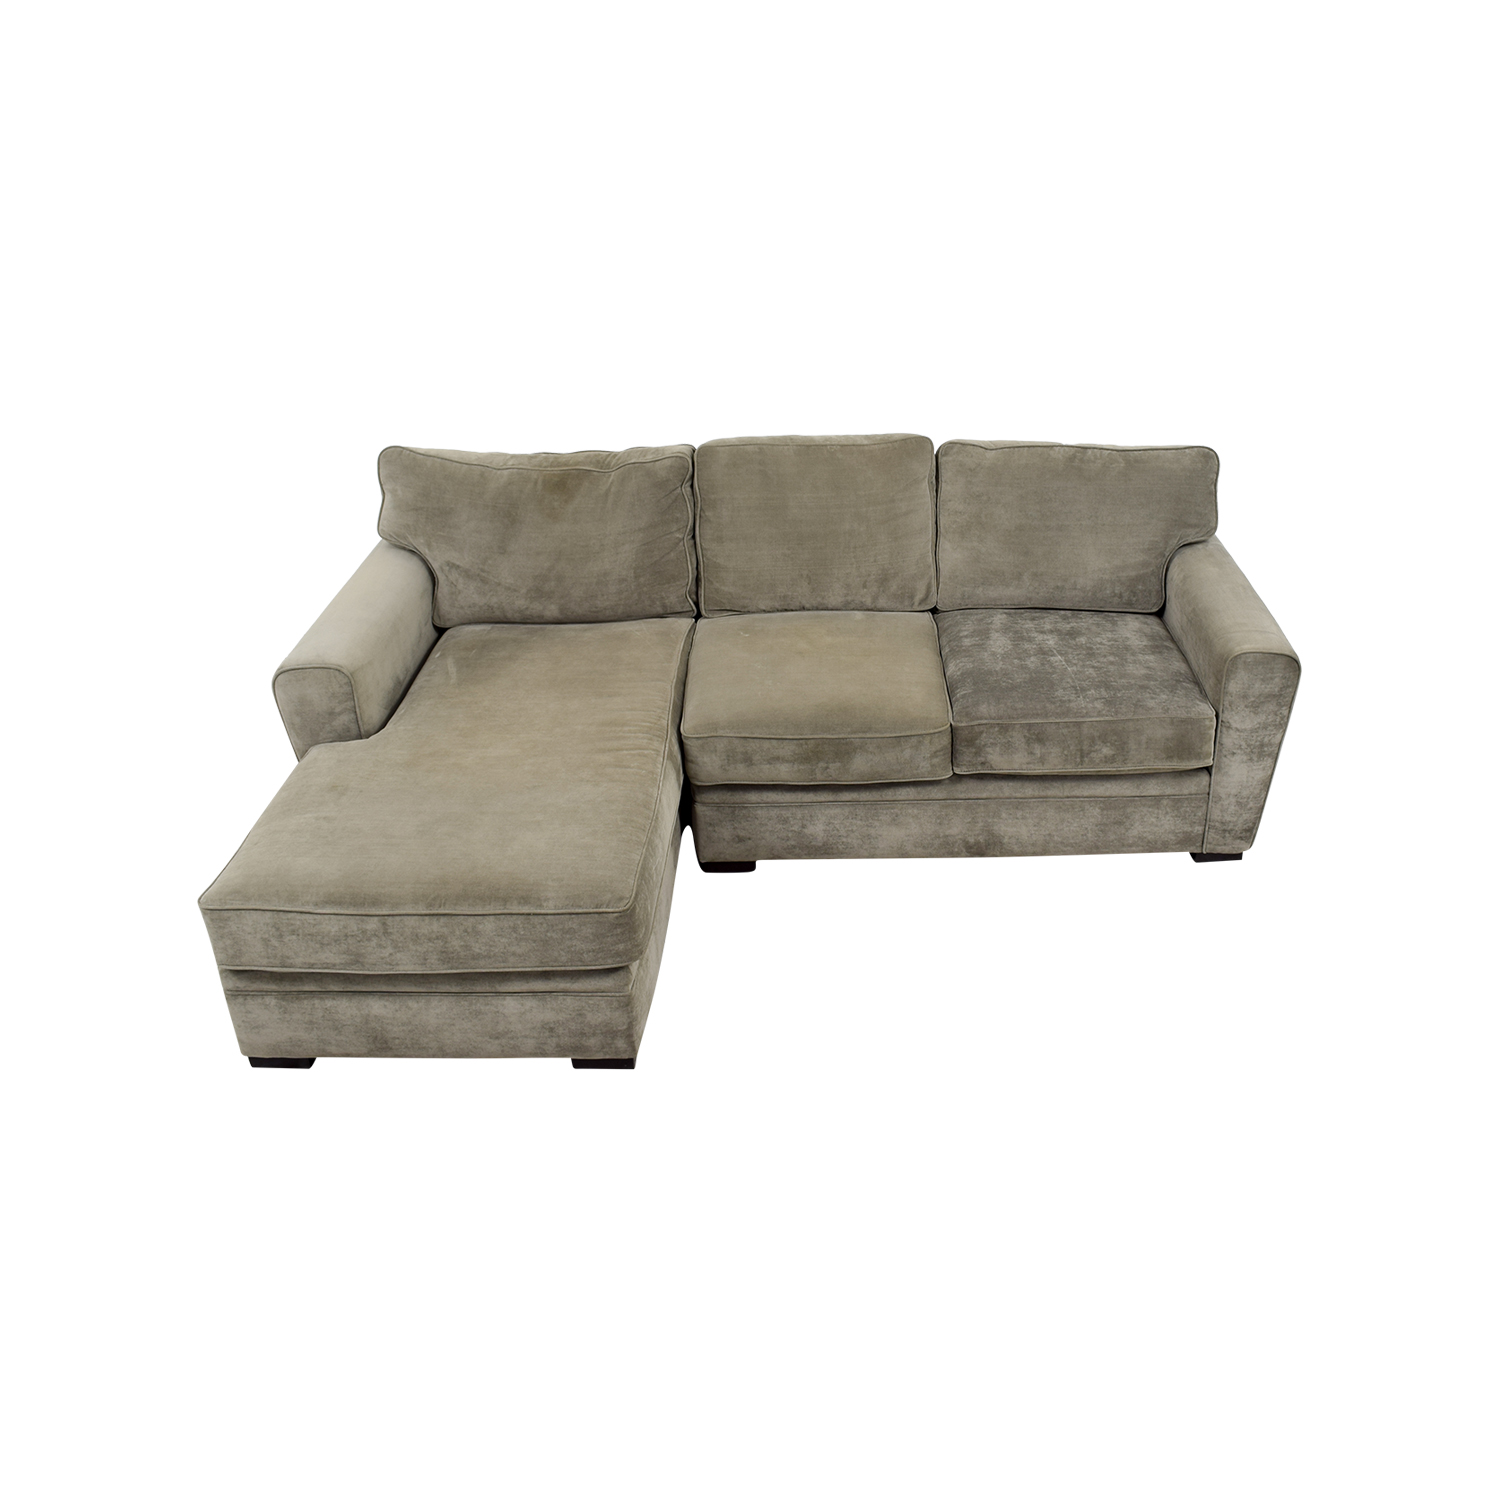 Crate and Barrel Crate and Barrel Gray Velvet Chaise Sectional price